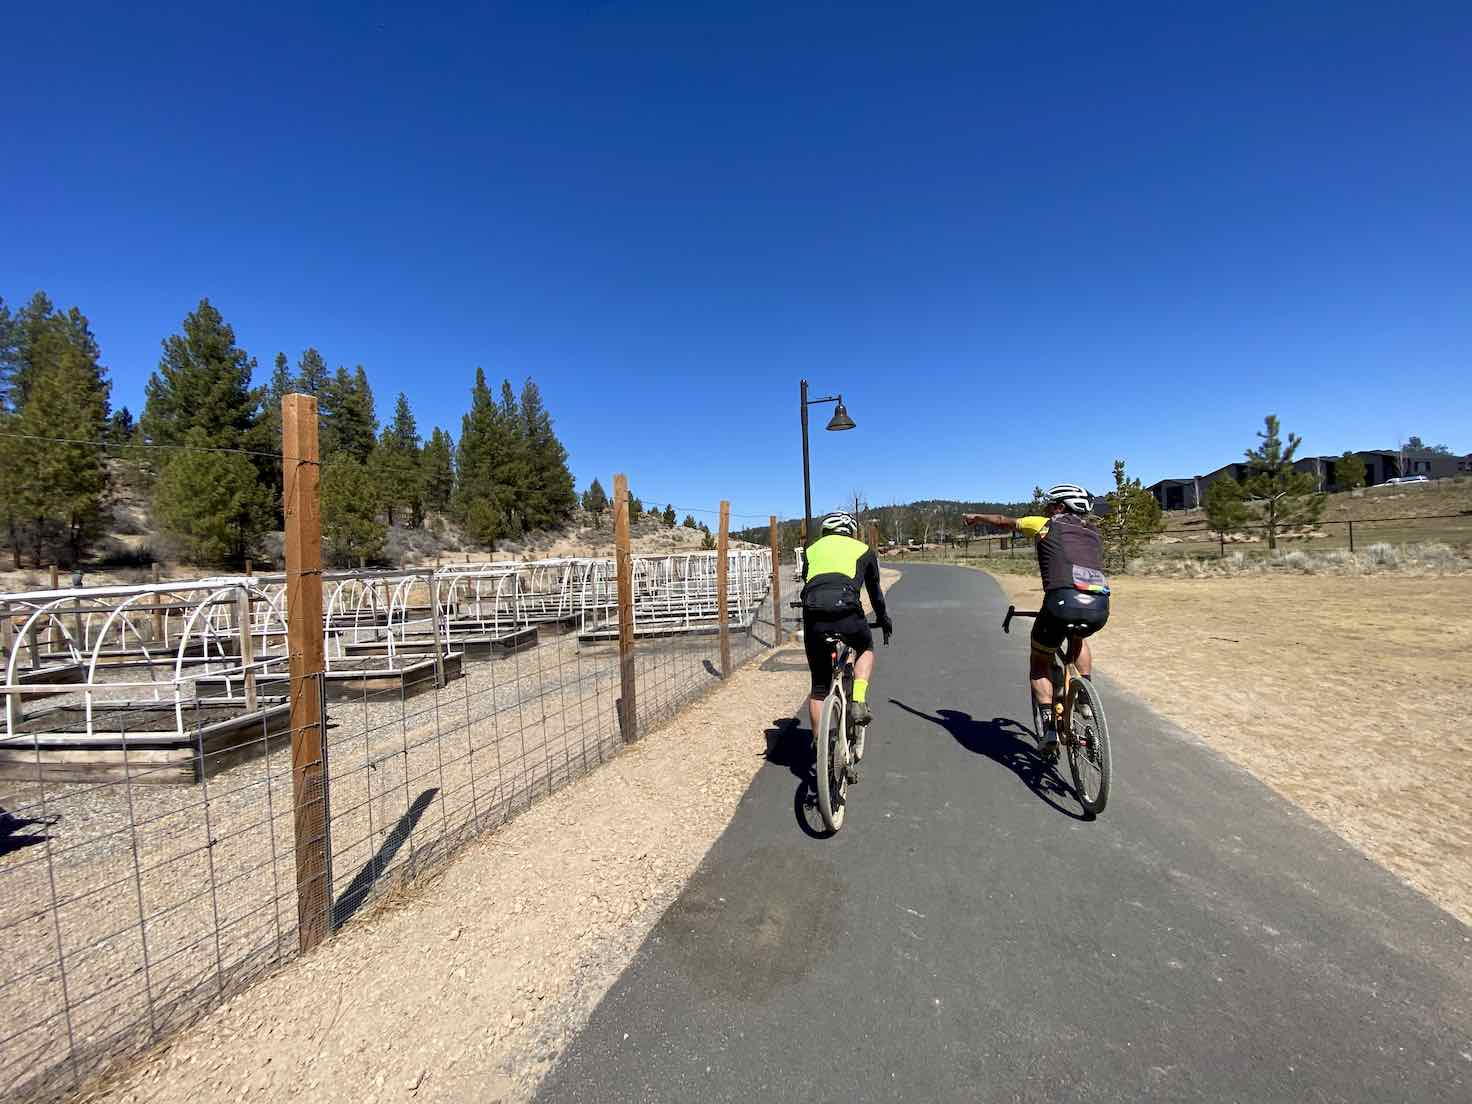 Cyclist on the paved trail near the community gardens at Discovery Park in Bend, Oregon.